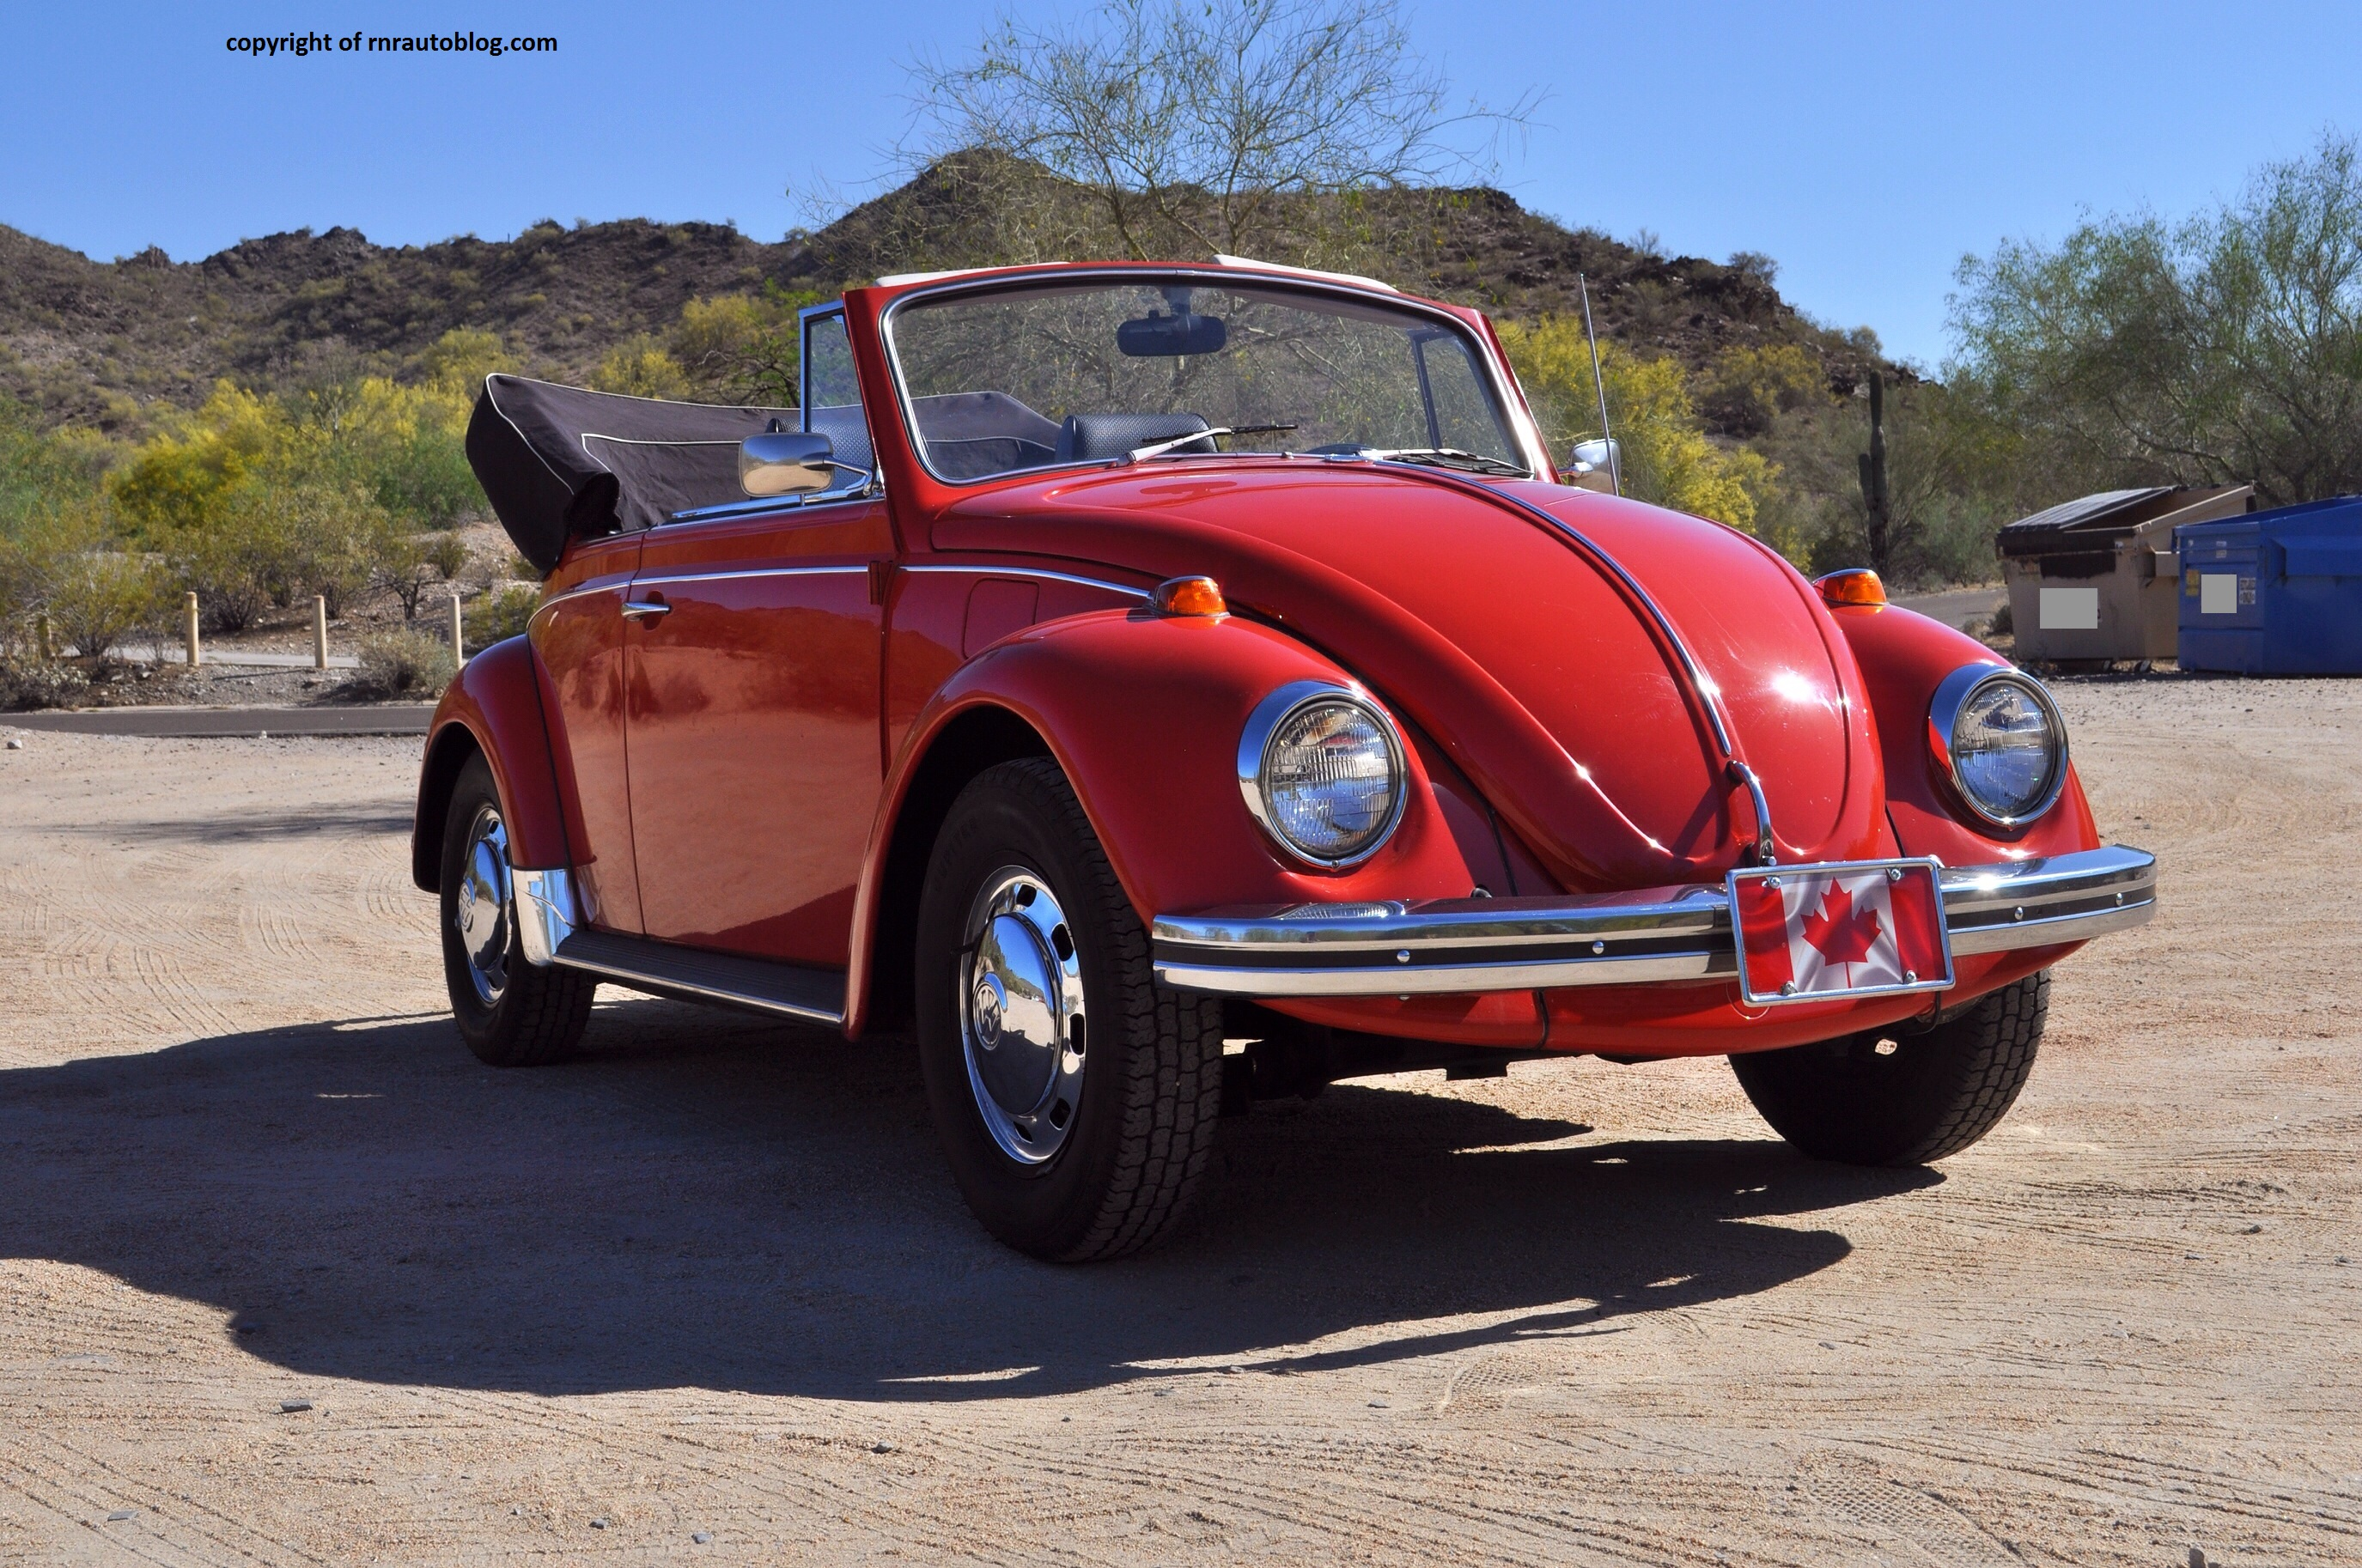 volkswagen beetle convertible review rnr automotive blog